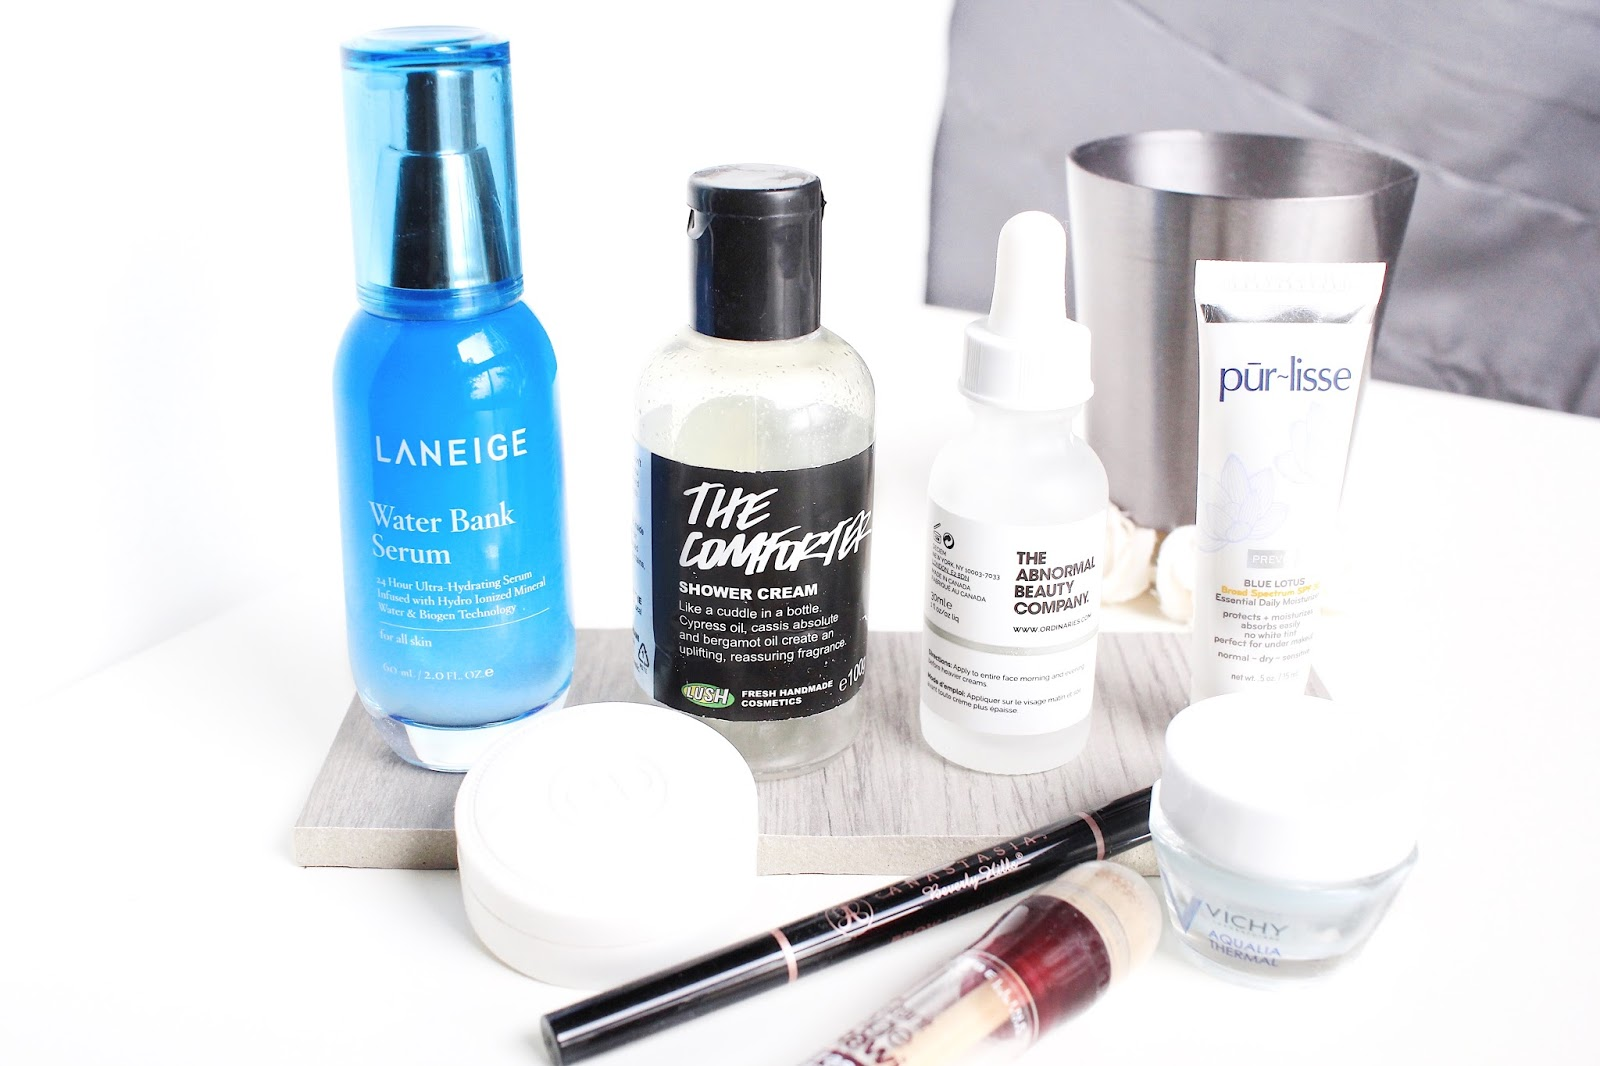 Product Empties #3